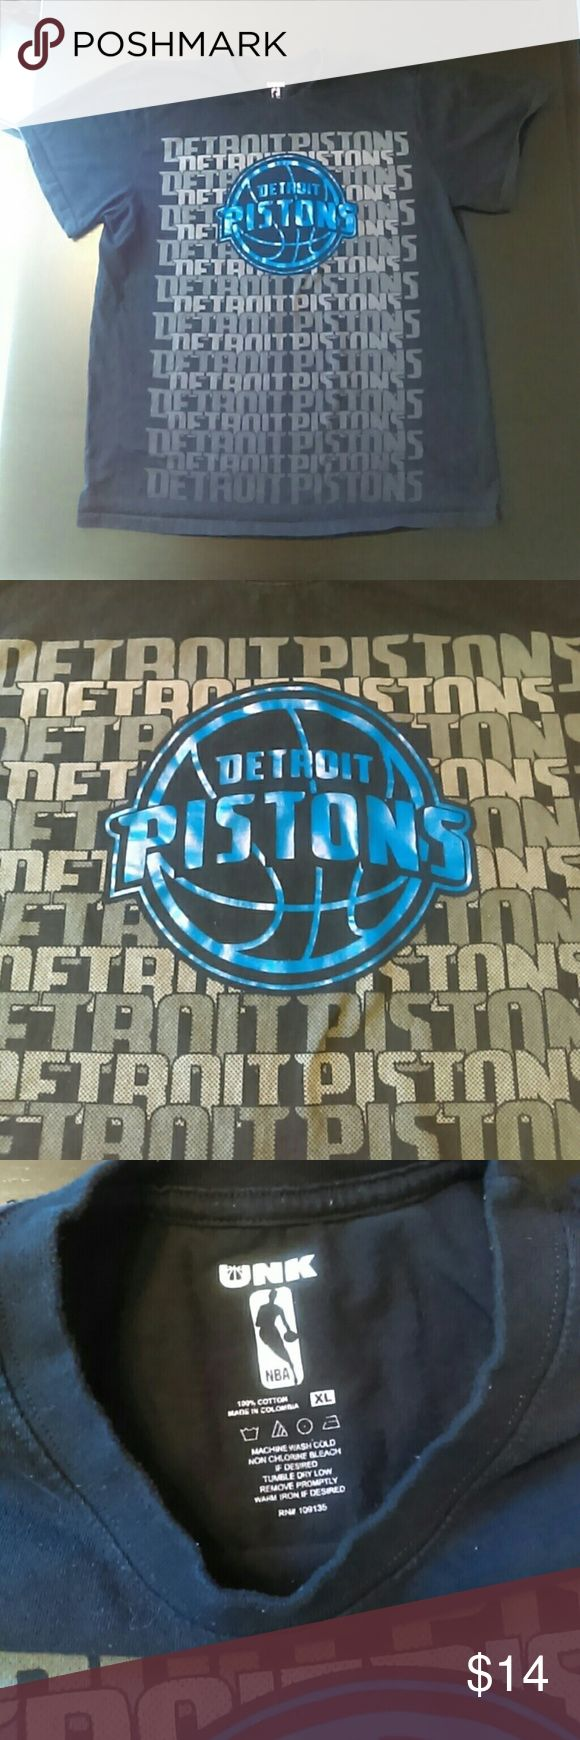 """UNK Detroit Pistons Black Basketball T-Shirt Great condition black t-shirt with grey spell out """"Detroit Pistons"""", and blue outline basketball emblem. UNK Shirts Tees - Short Sleeve"""